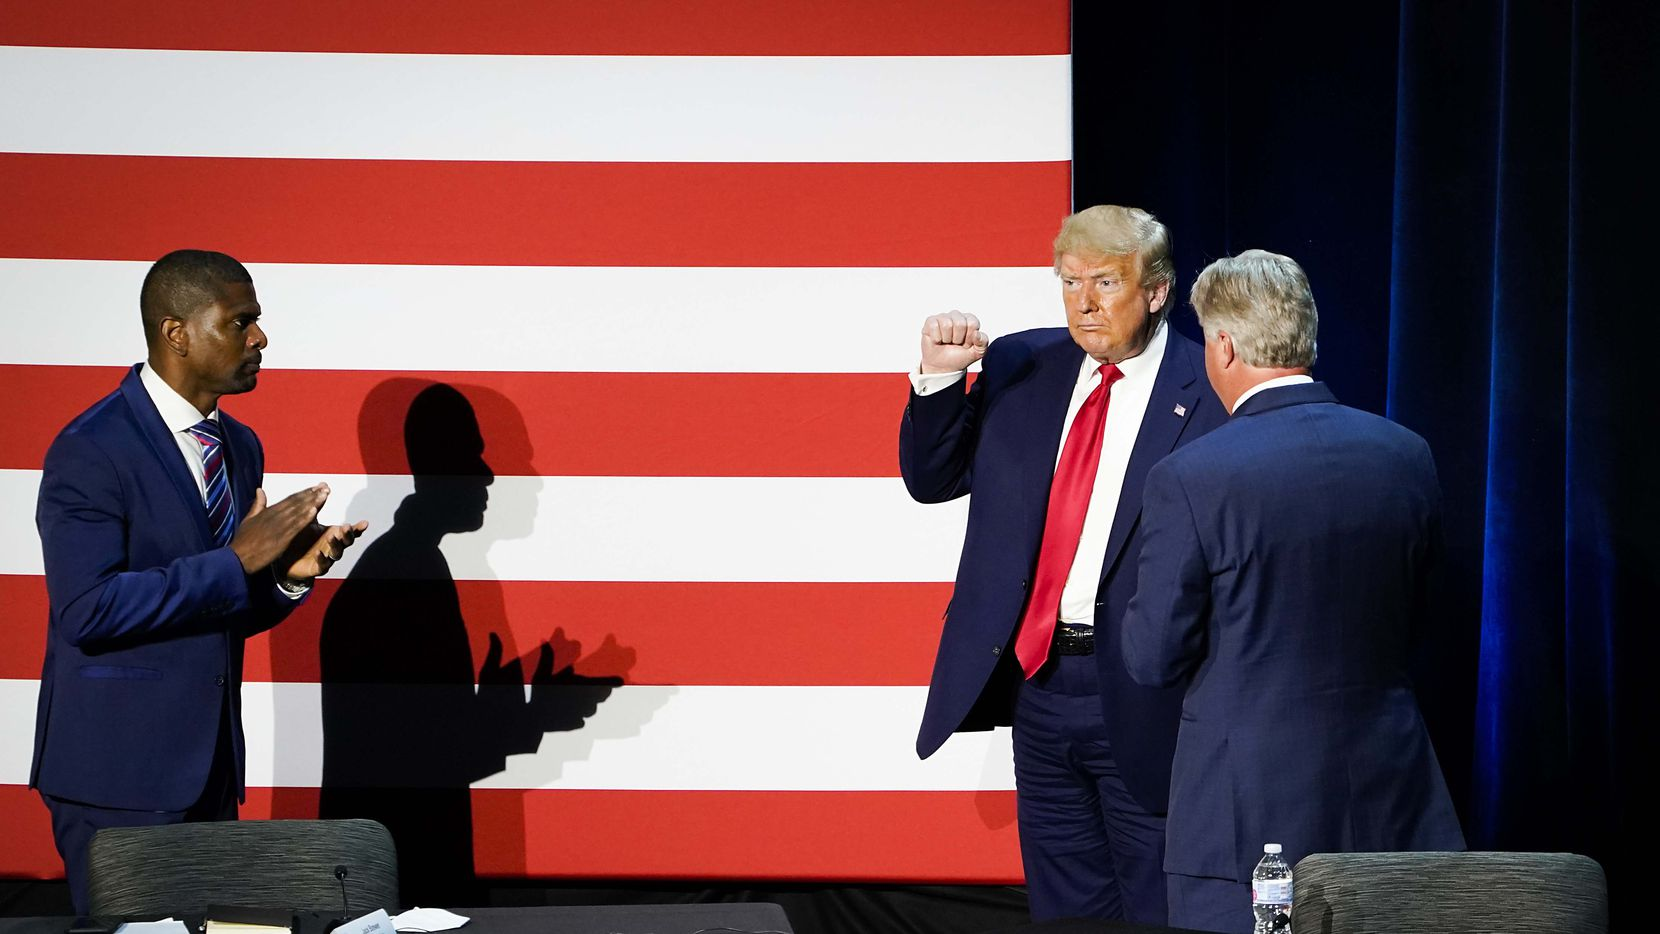 Jack Brewer (left) applauds as President Donald Trump acknowledges the crowd at the conclusion of a roundtable conversation about race relations and policing at Gateway Church Dallas Campus on Thursday, June 11, 2020, in Dallas.